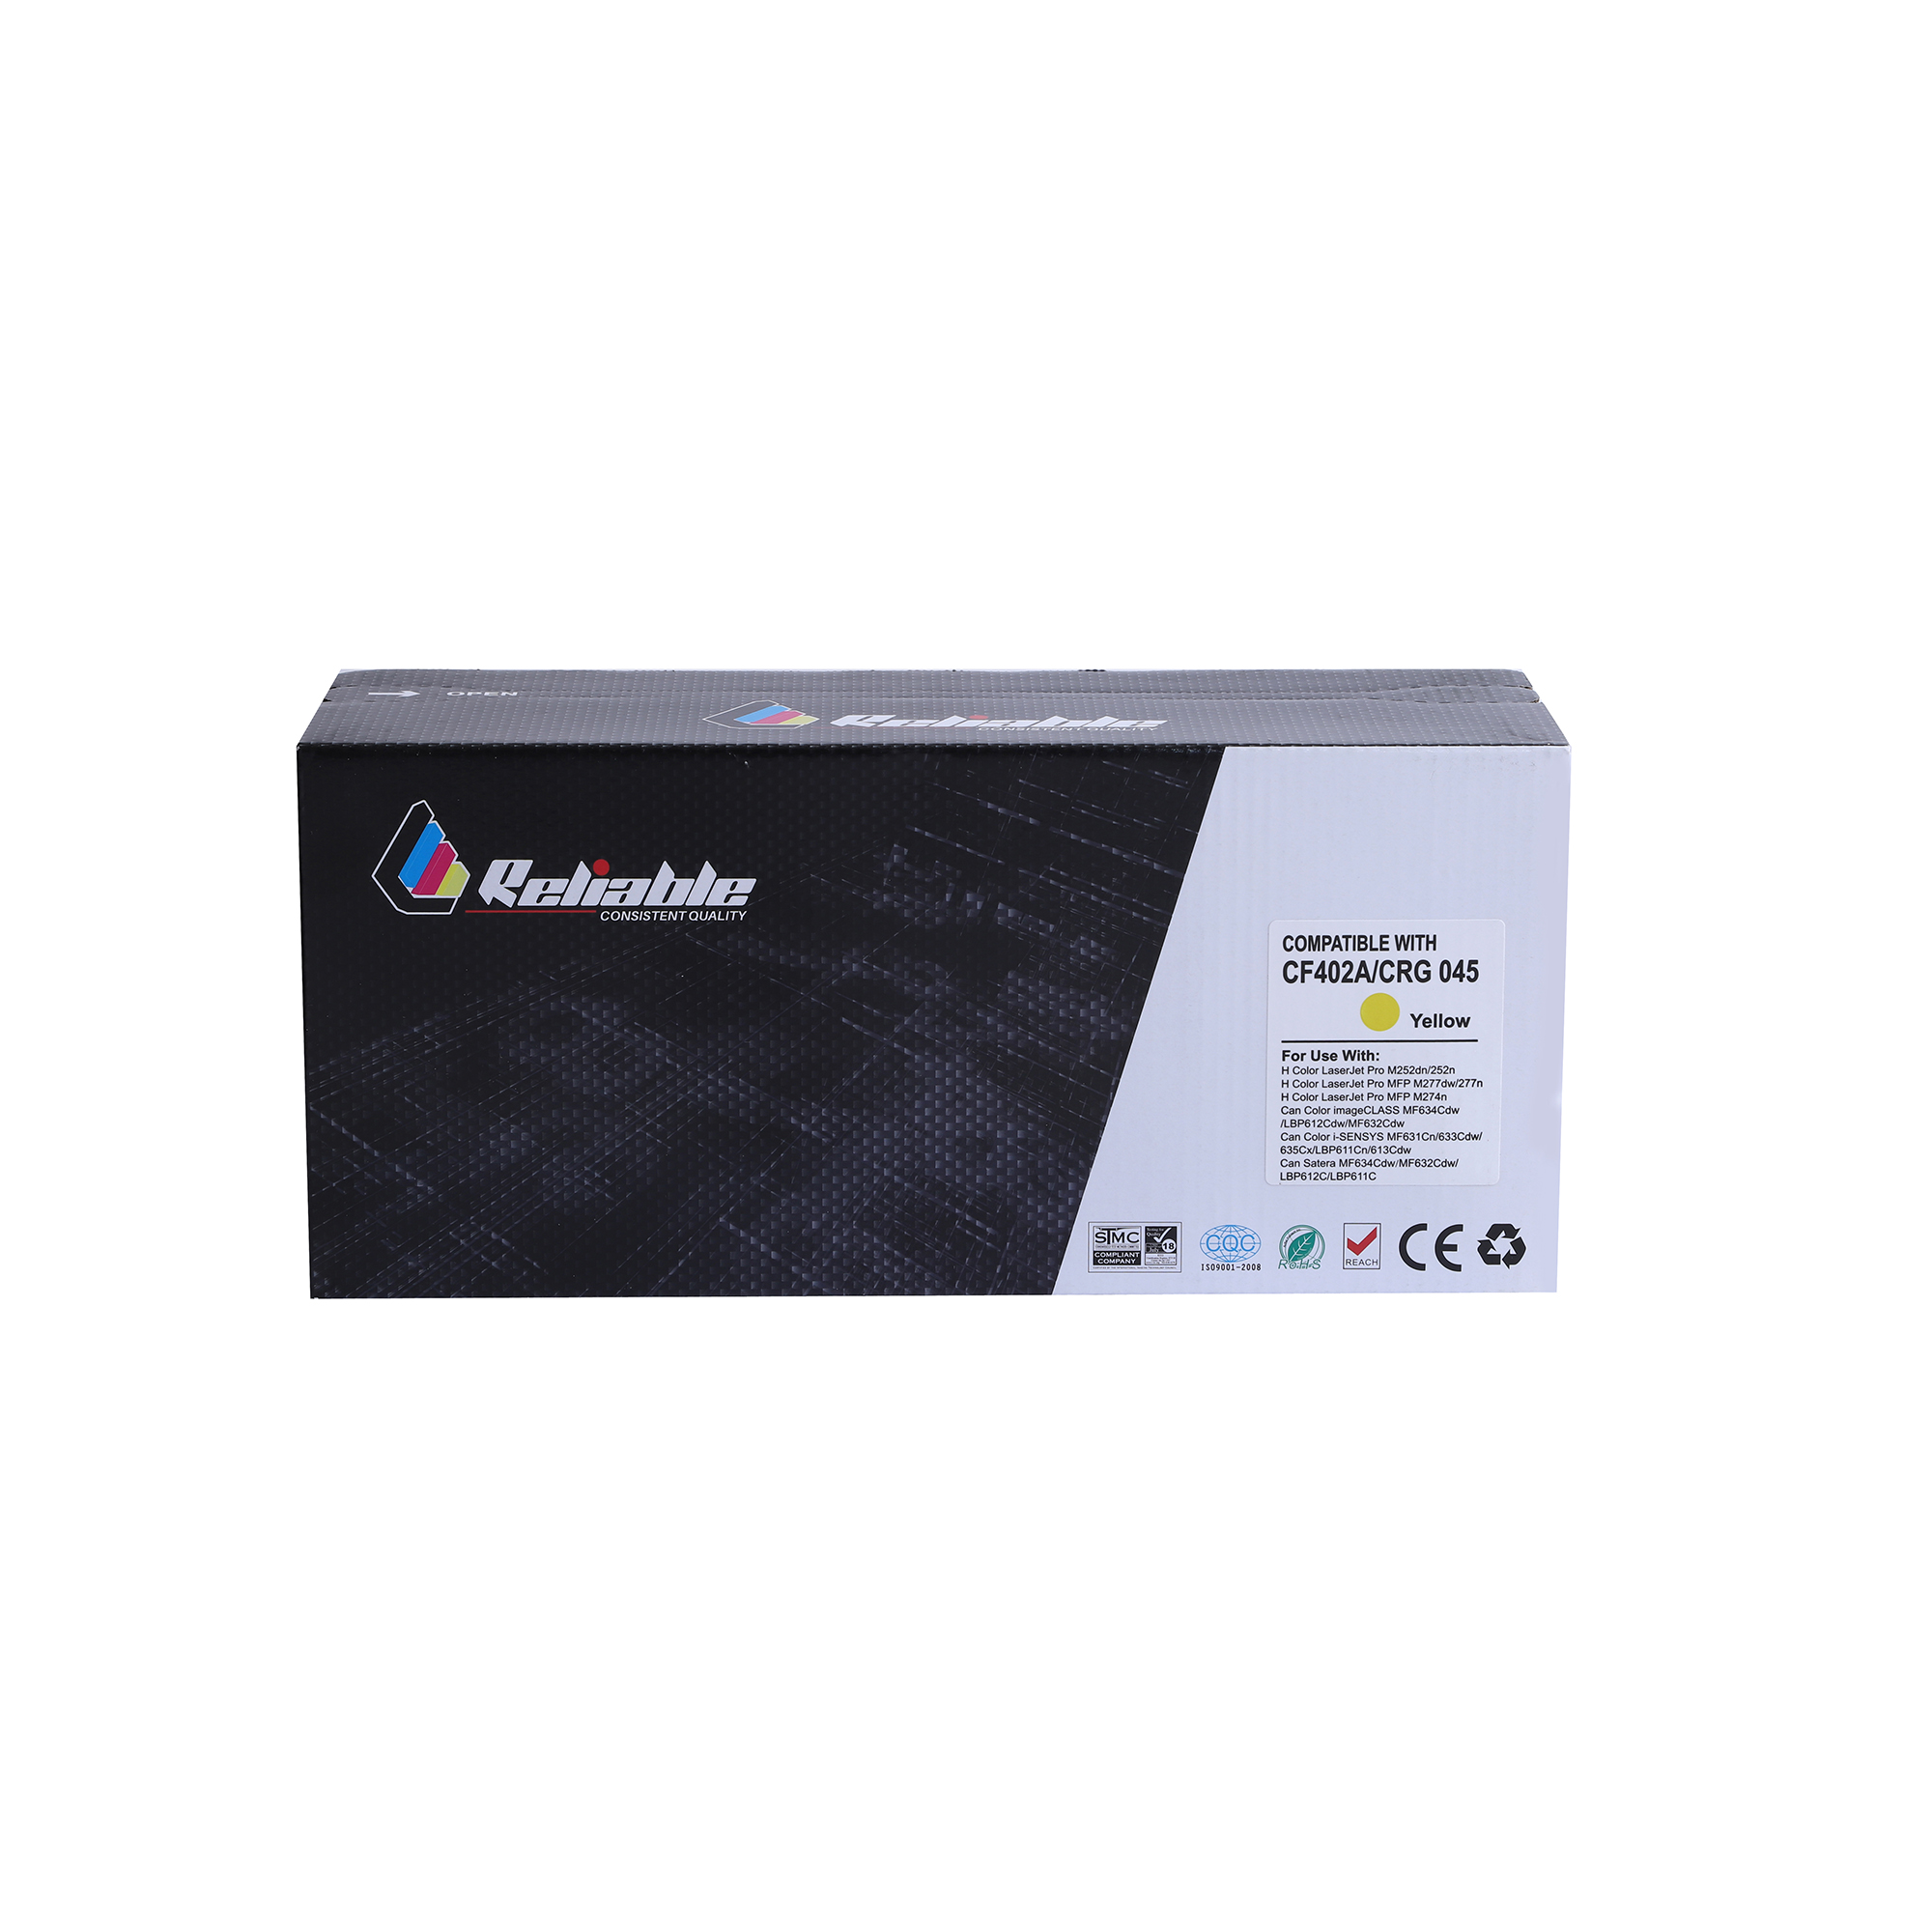 Reliable 201A (CF402A) Compatible Toner Cartridge - Yellow